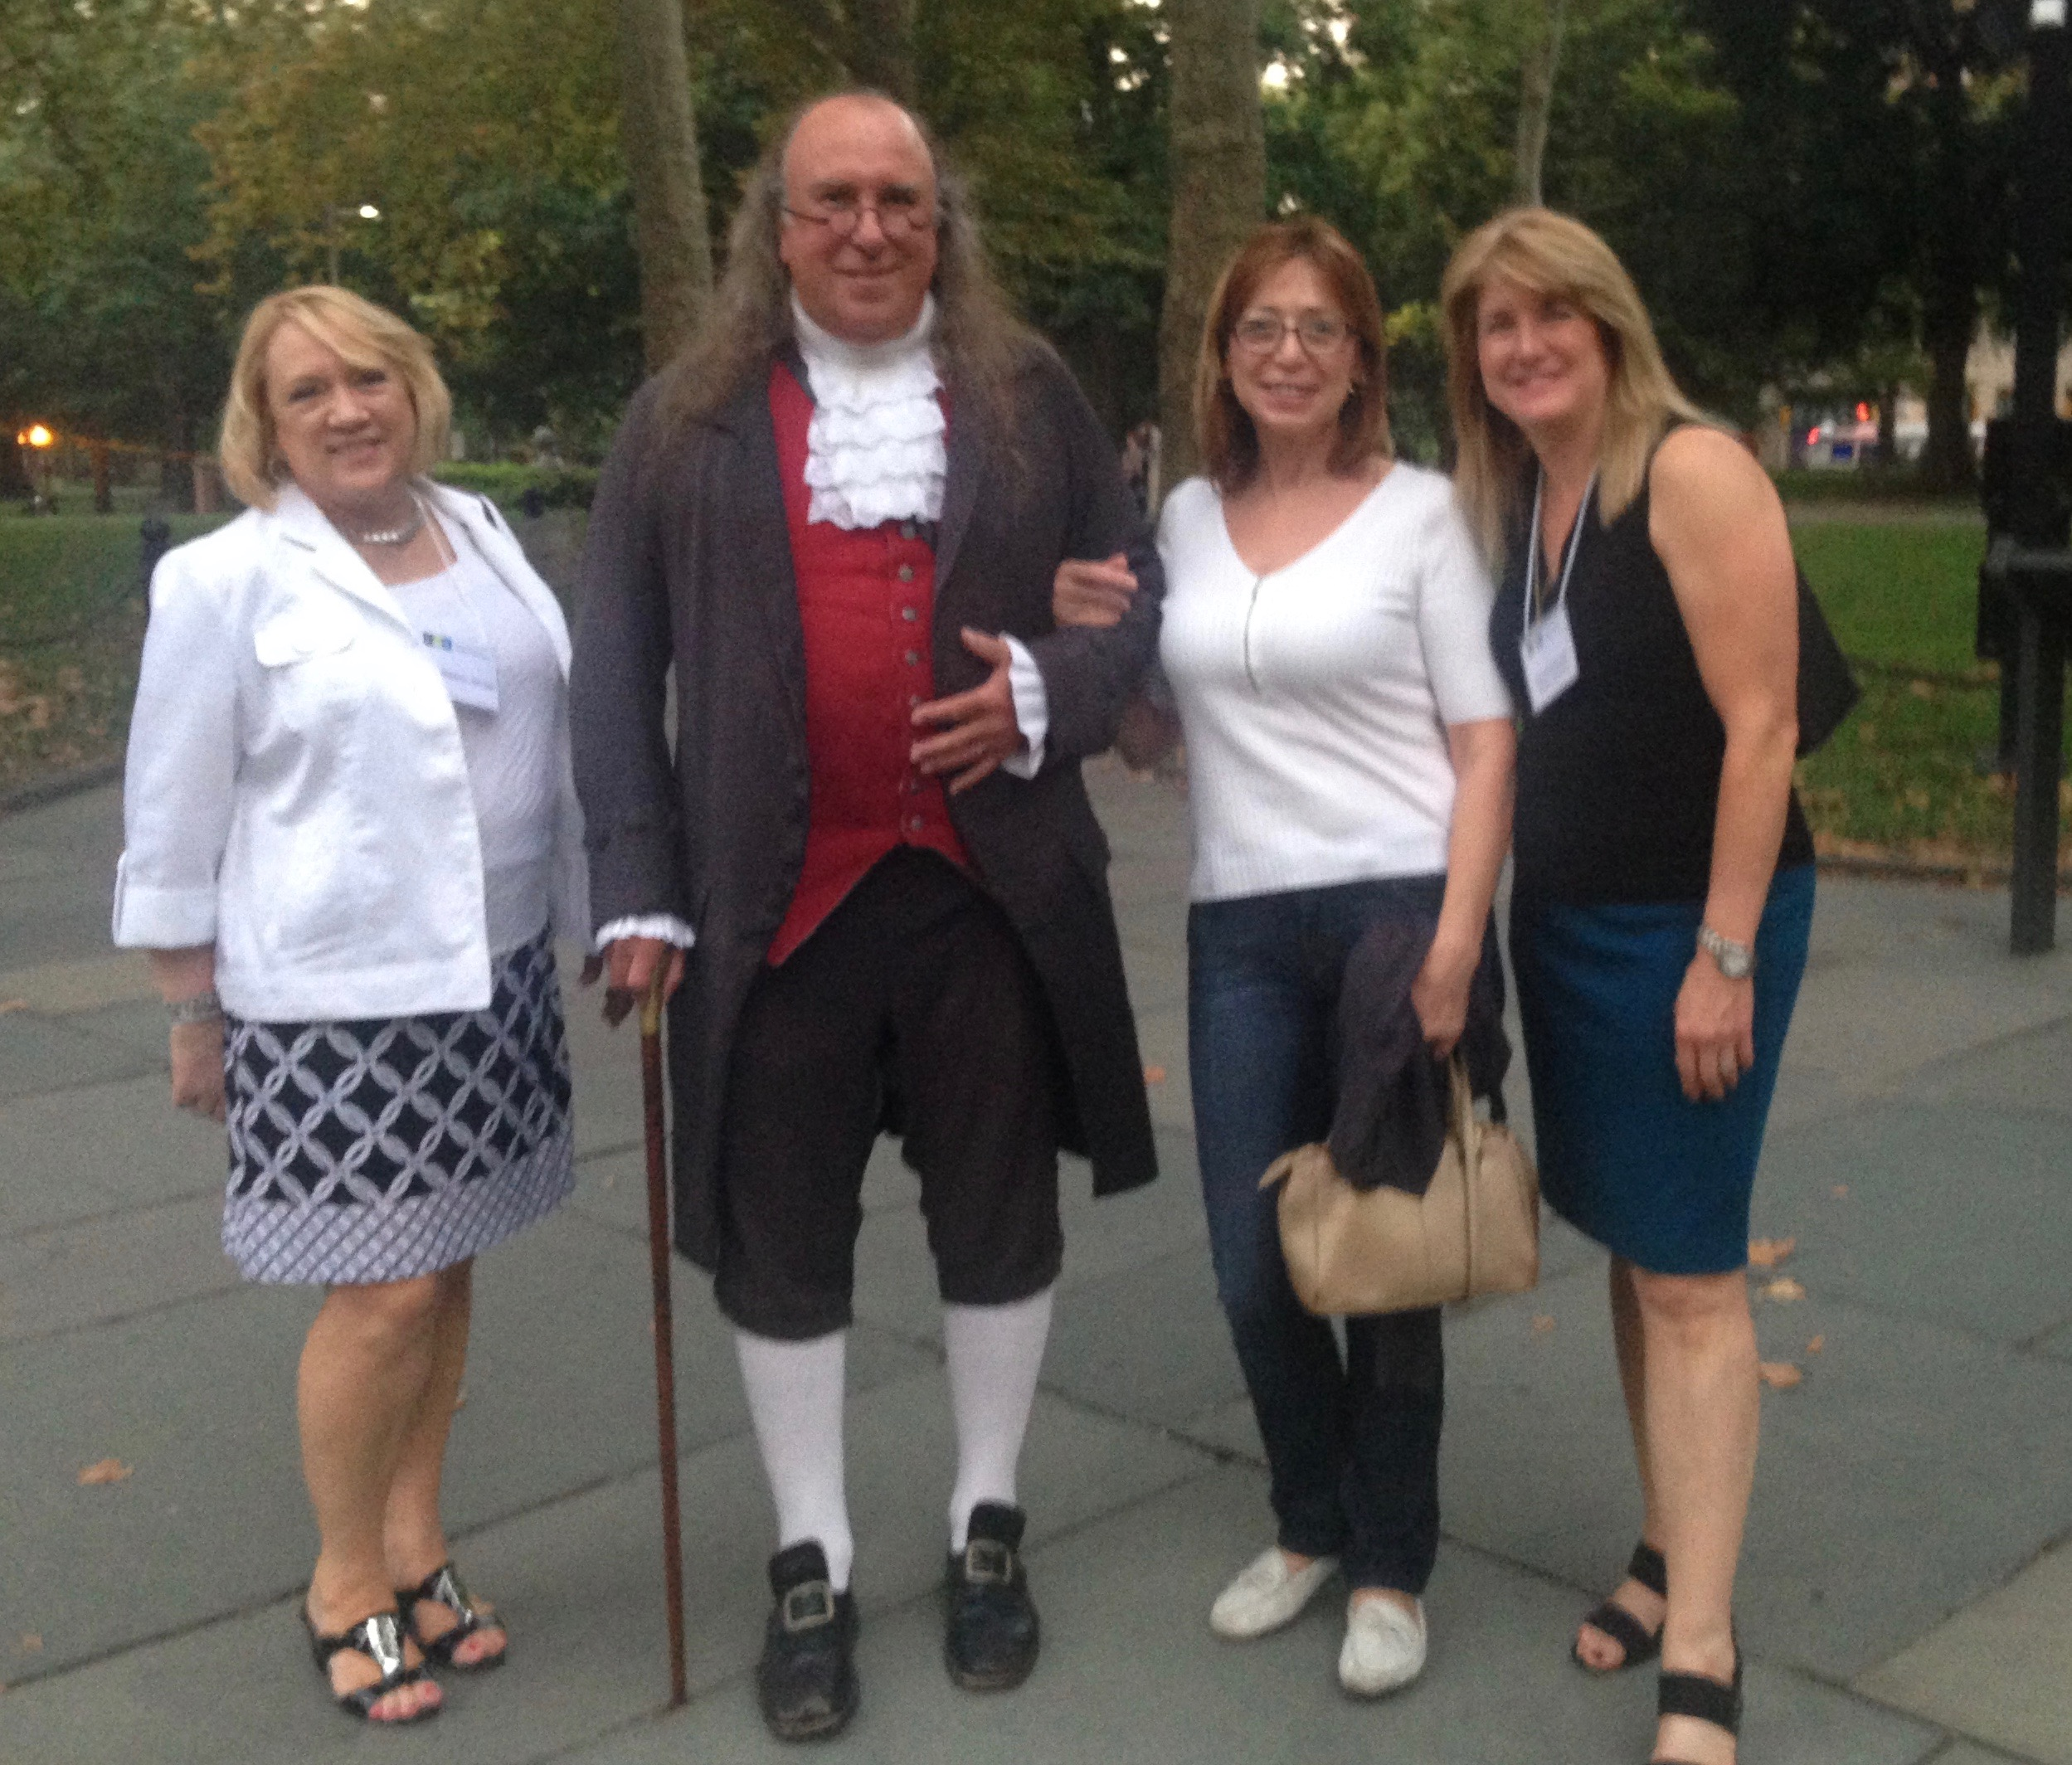 When in Philadelphia, you have to meet Ben Franklin